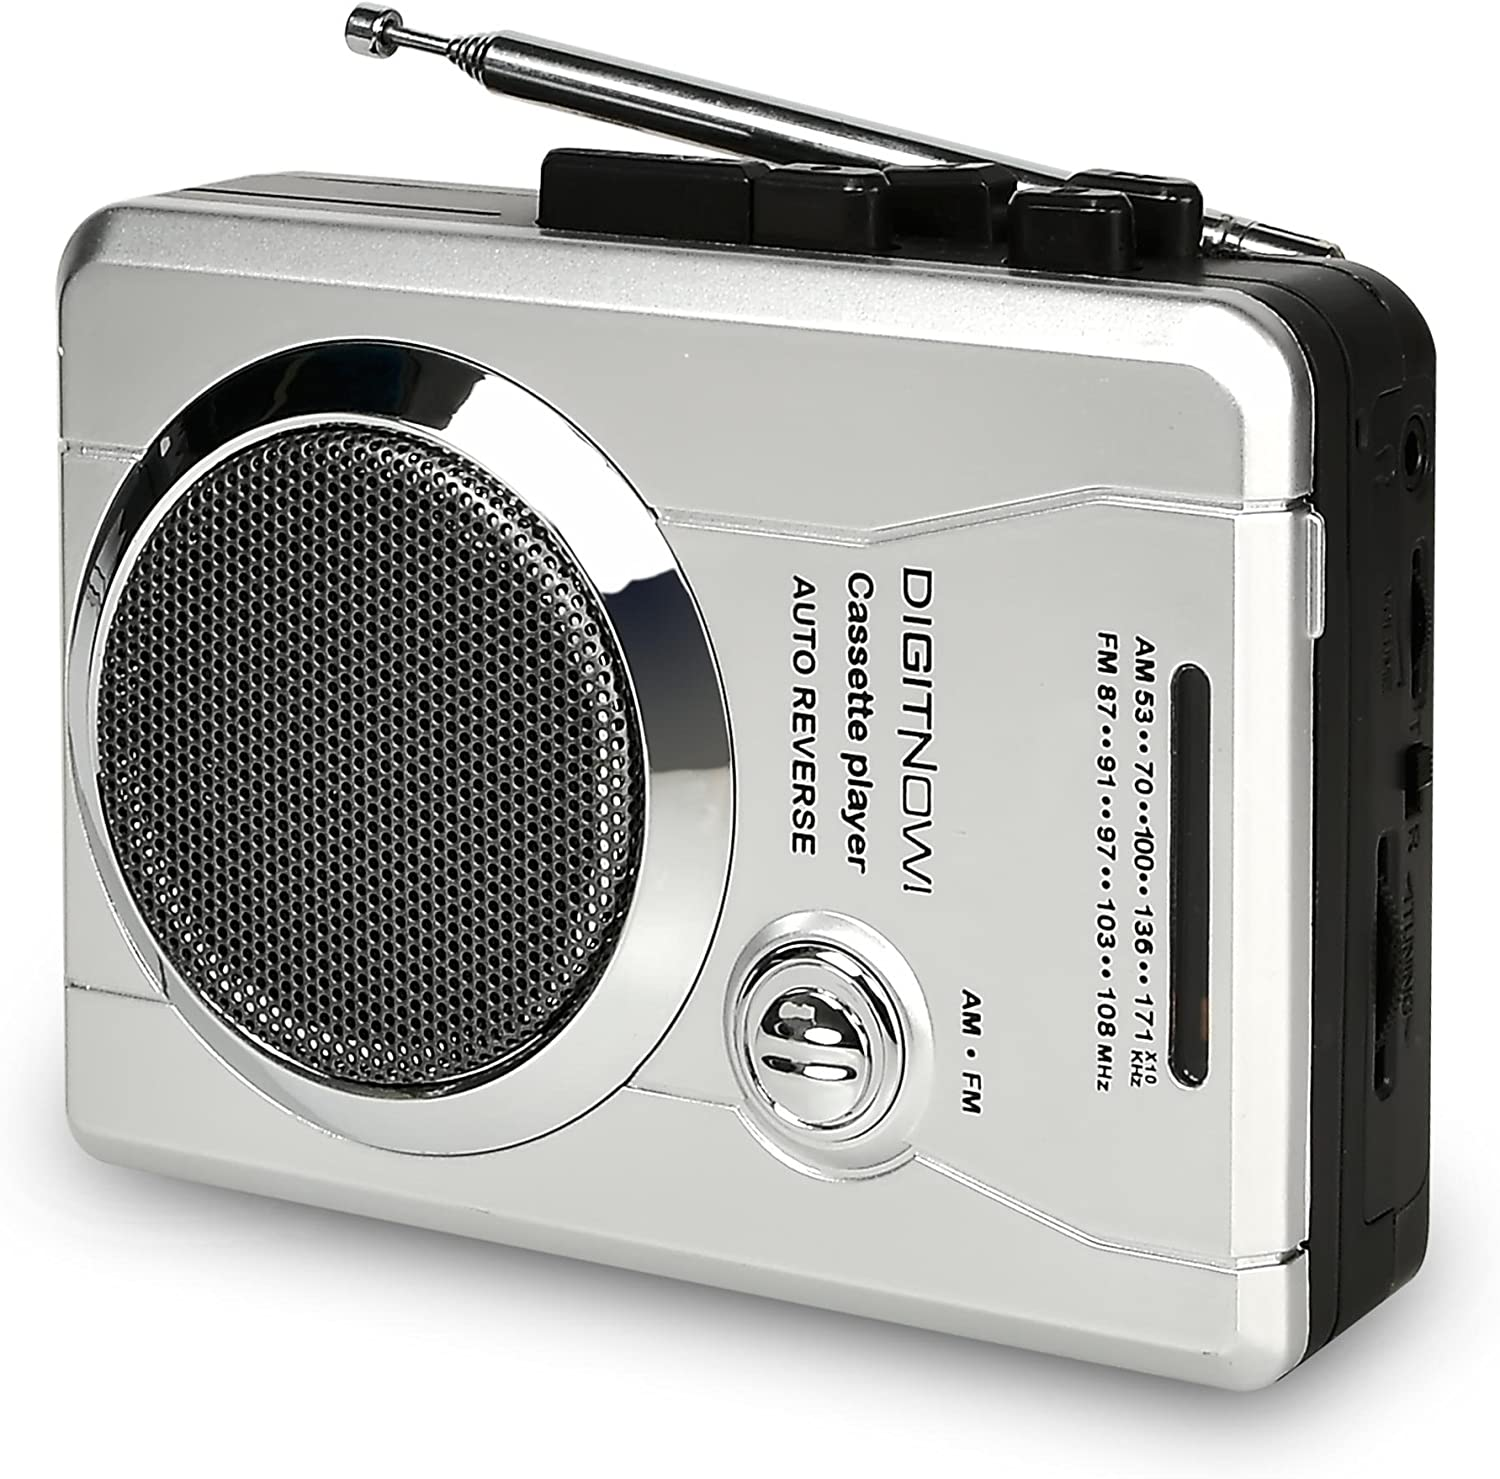 DIGITNOW AM mart FM Portable Pocket Radio Audio Re and Cassette Spring new work Voice